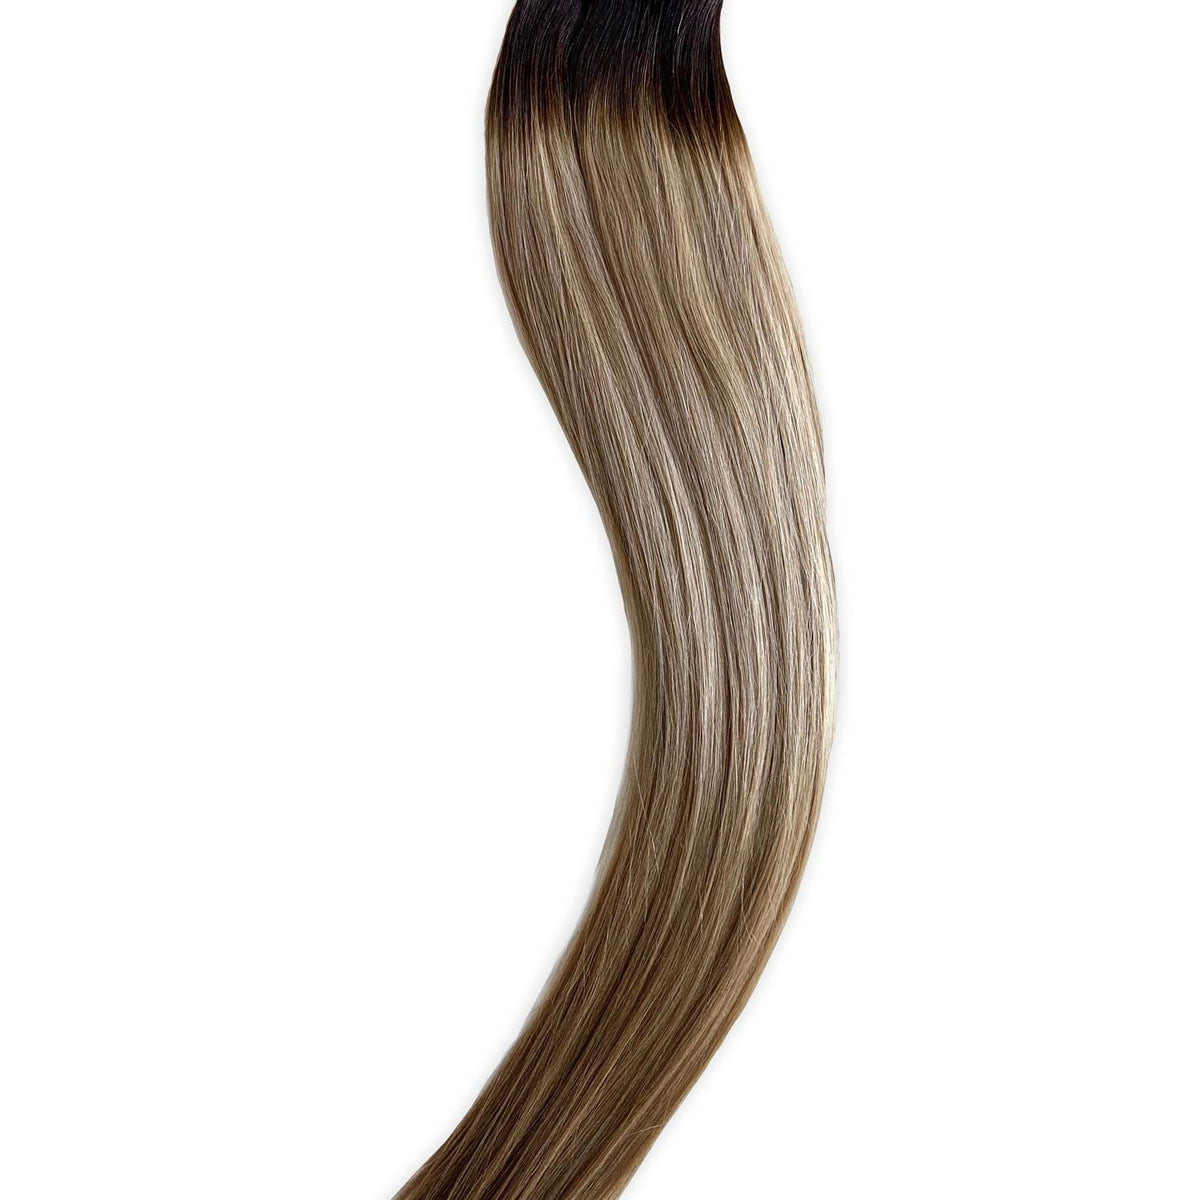 Laced Hair Machine Sewn Weft Extensions Rooted #4/D10/16